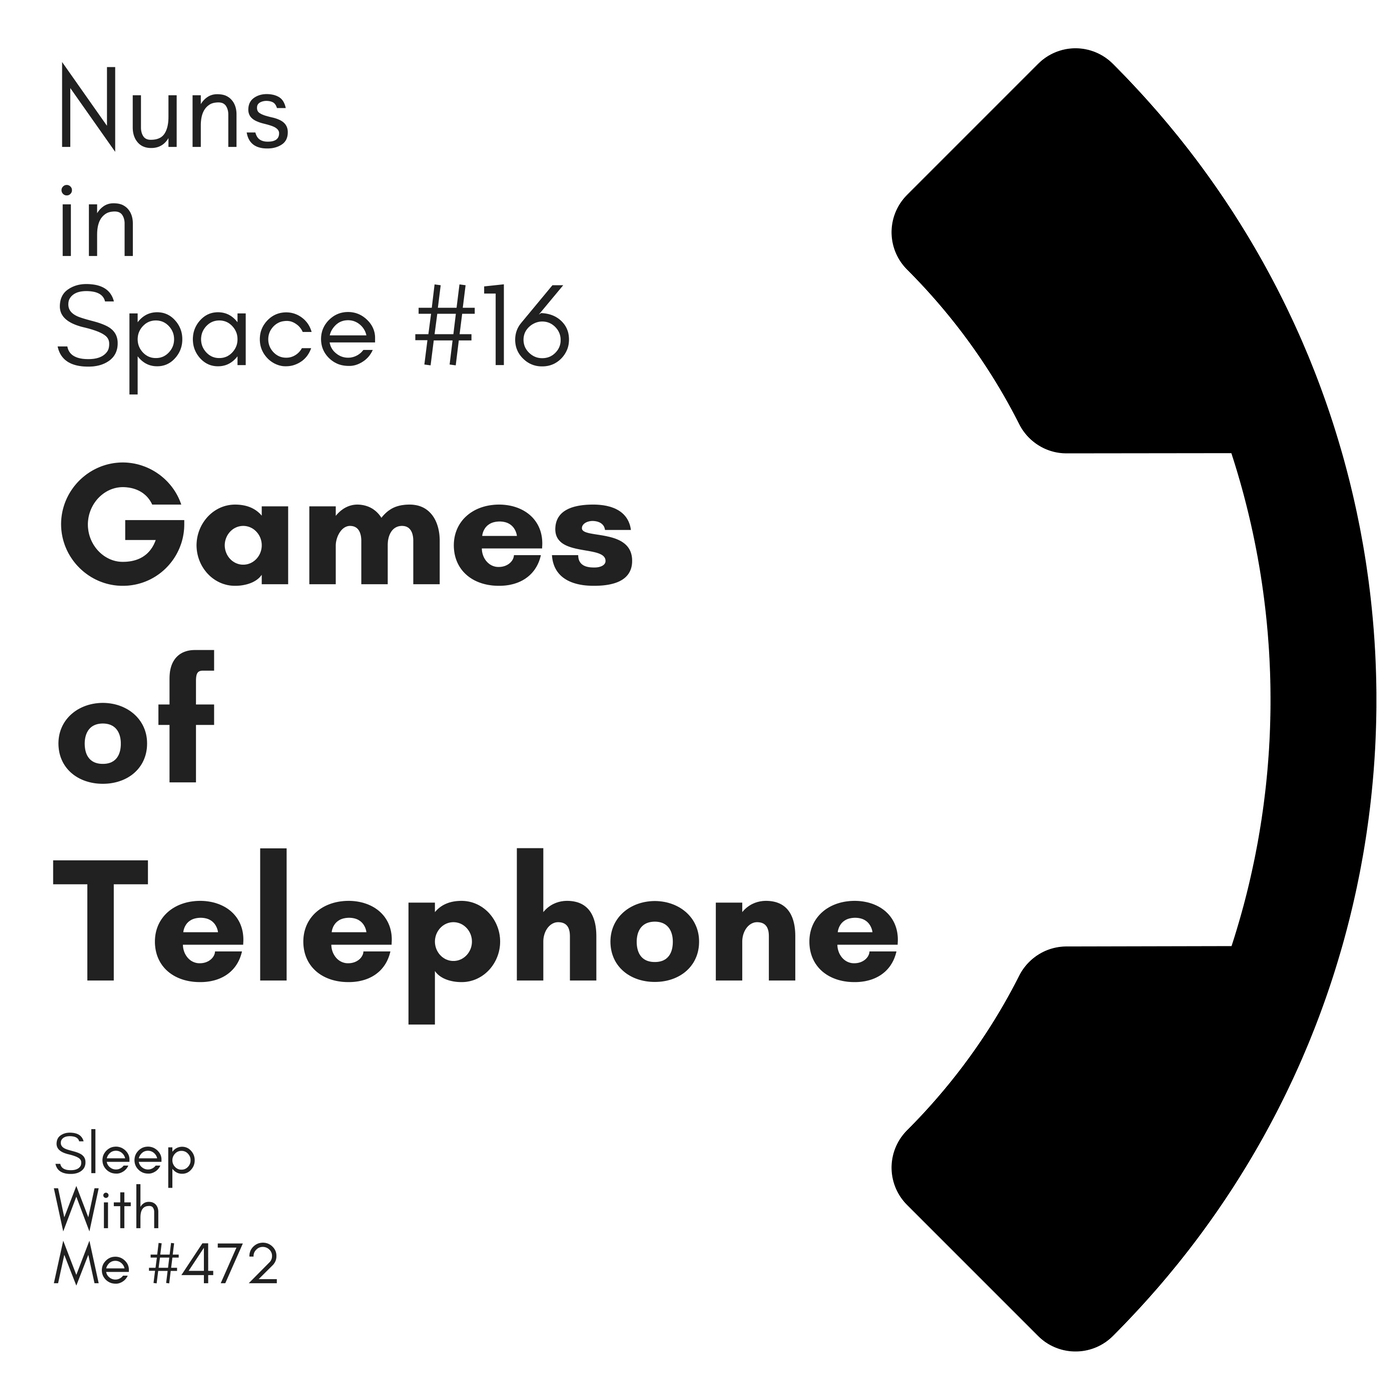 Games of Telephone | Nuns in Space #16 | Sleep With Me #472